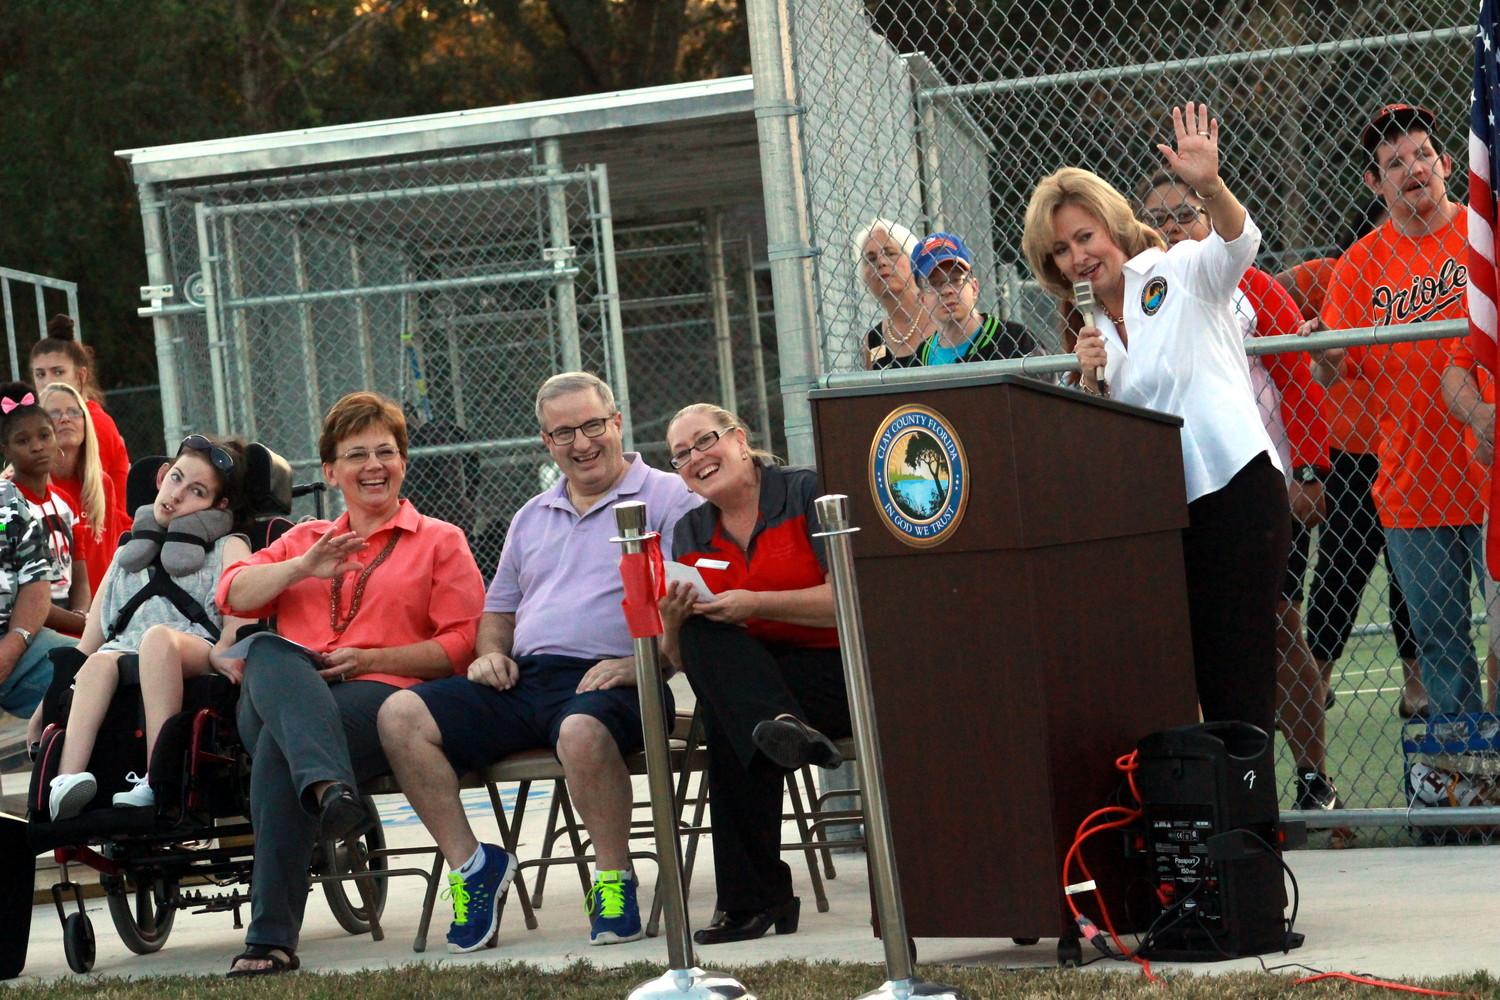 Clay County Commission Vice Chair Diane Hutchings waves to spectators of the ribbon cutting ceremony for the new Moody Avenue Park baseball field while, from left, Brienna McElyea, Jill McElyea, Brian McElyea and Ronna Smith smile.